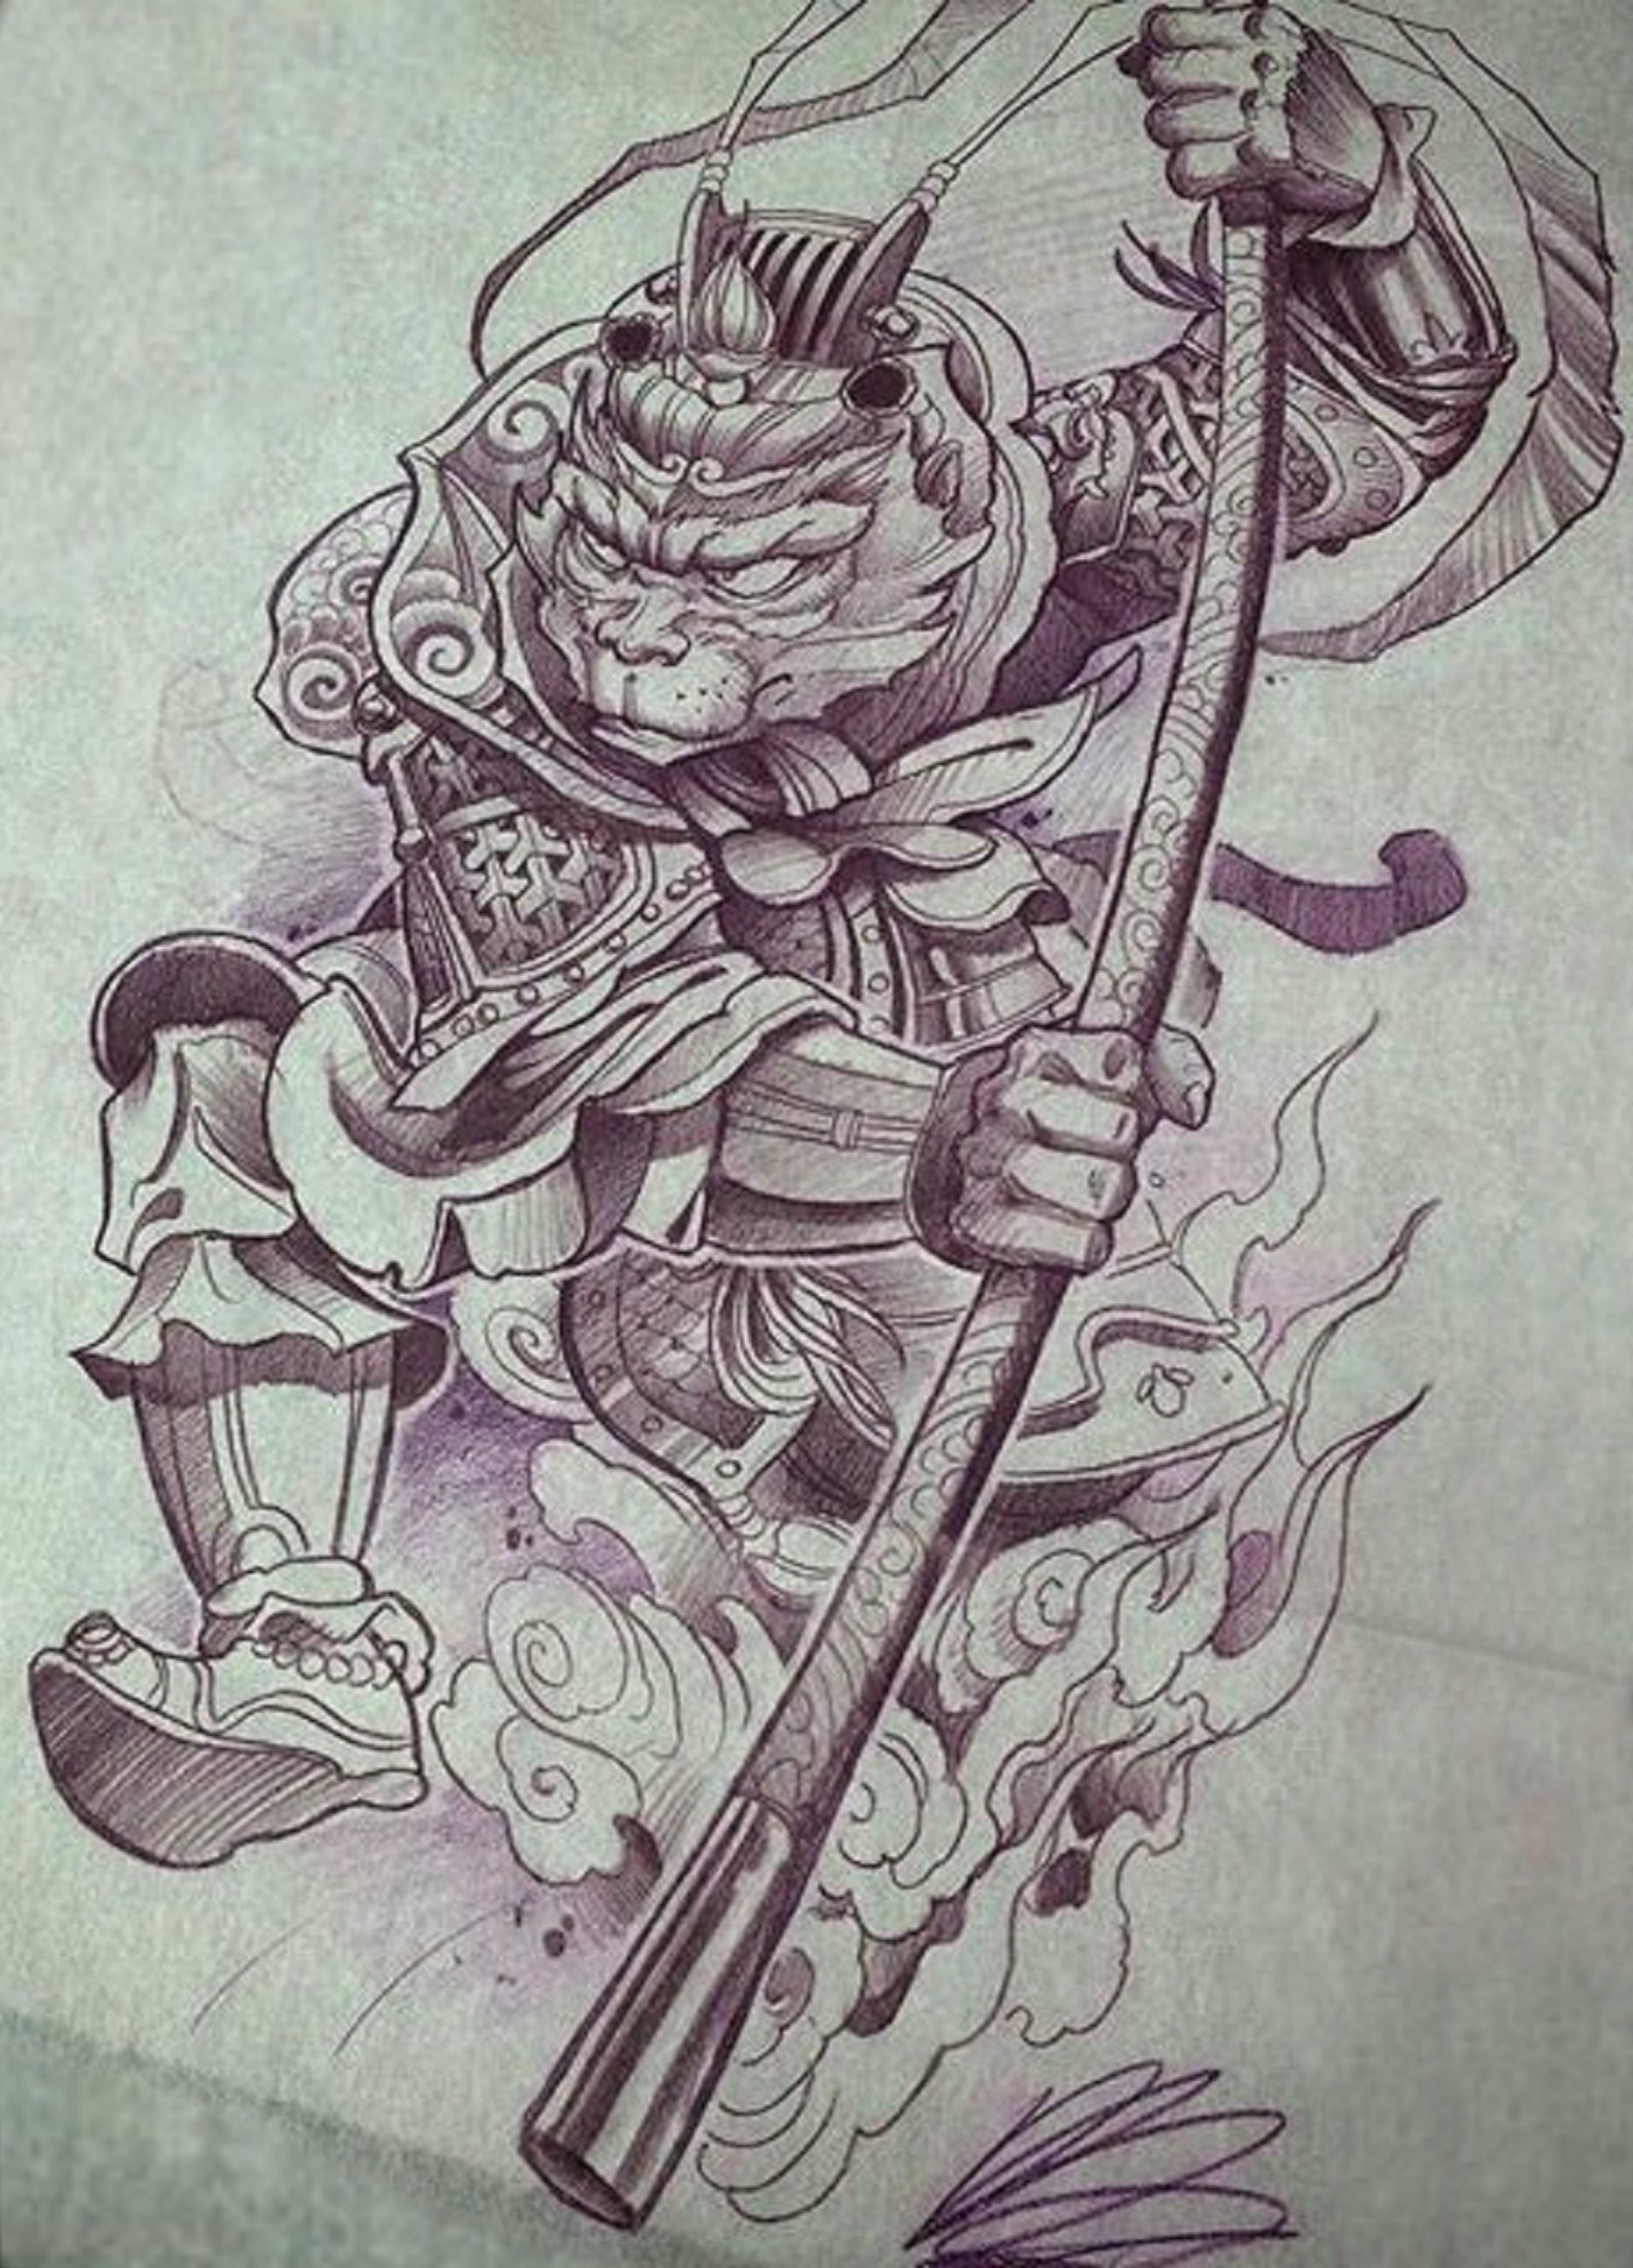 monkey king tattoo design tattoos pinterest king tattoos monkey king and tattoo designs. Black Bedroom Furniture Sets. Home Design Ideas